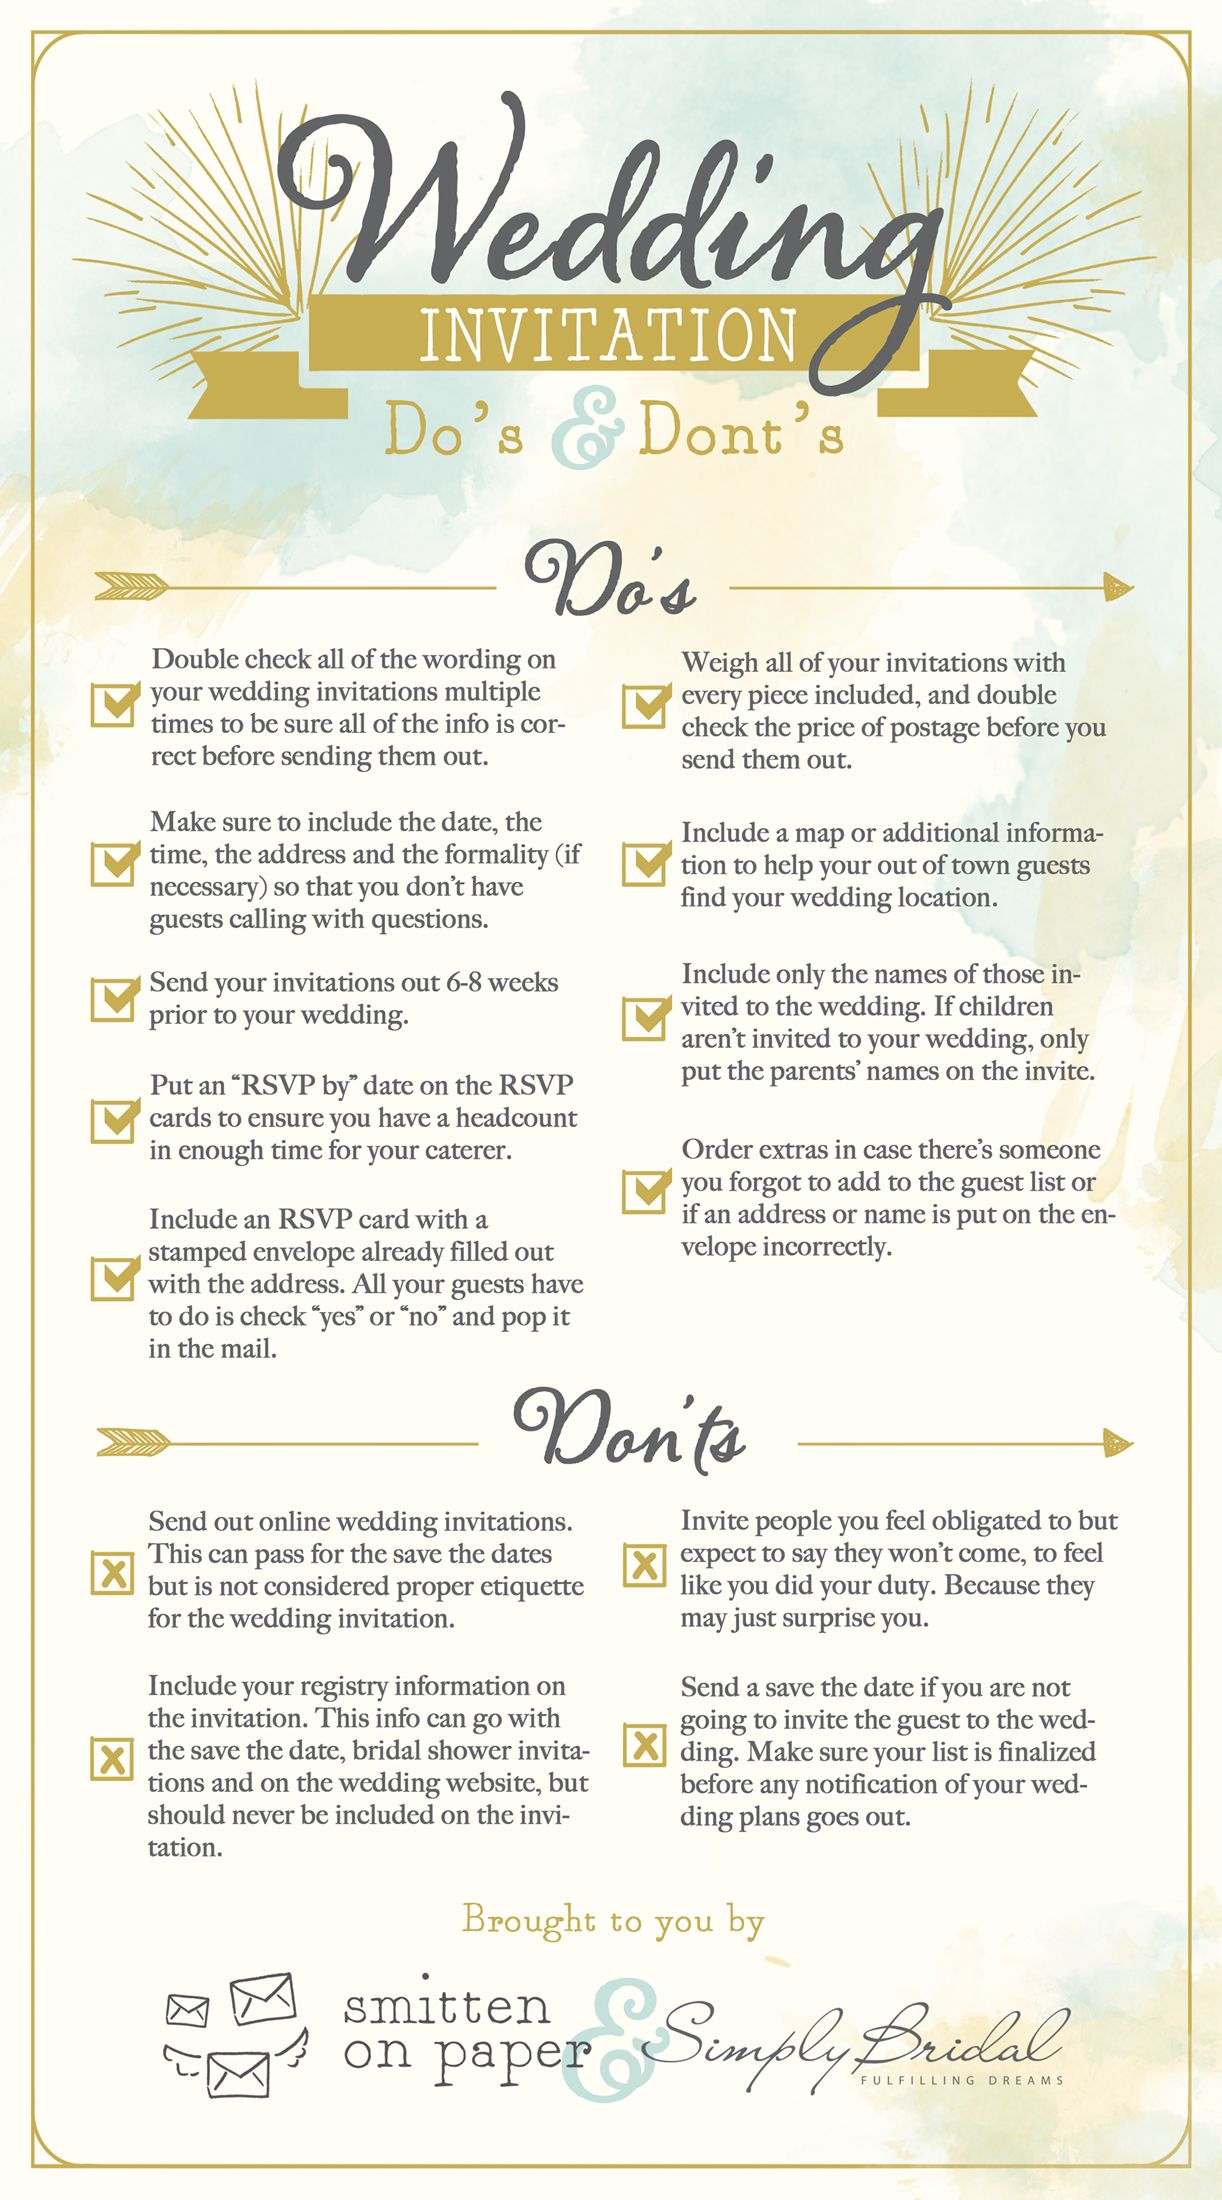 Do's And Don'ts For Your Wedding Invitations